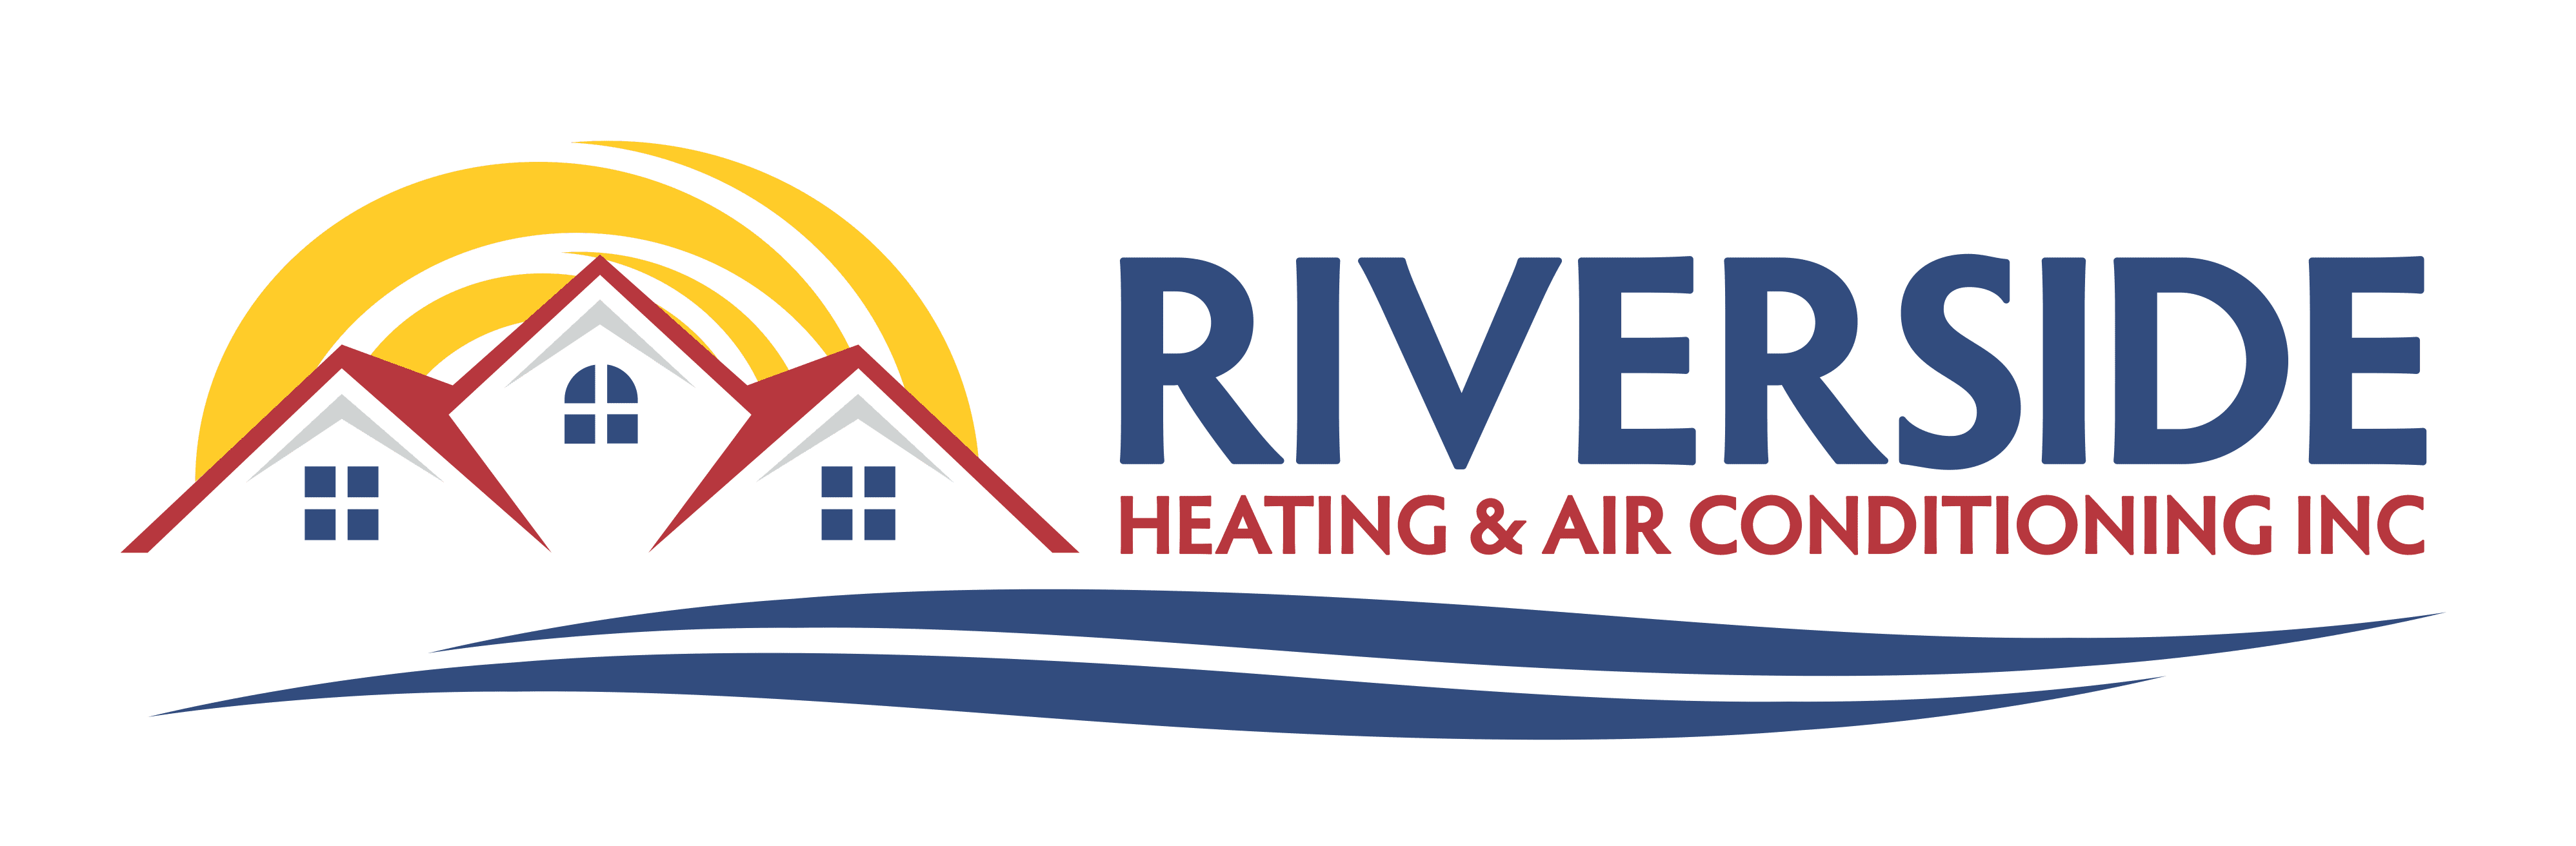 Riverside Heating & Air Conditioning Inc.